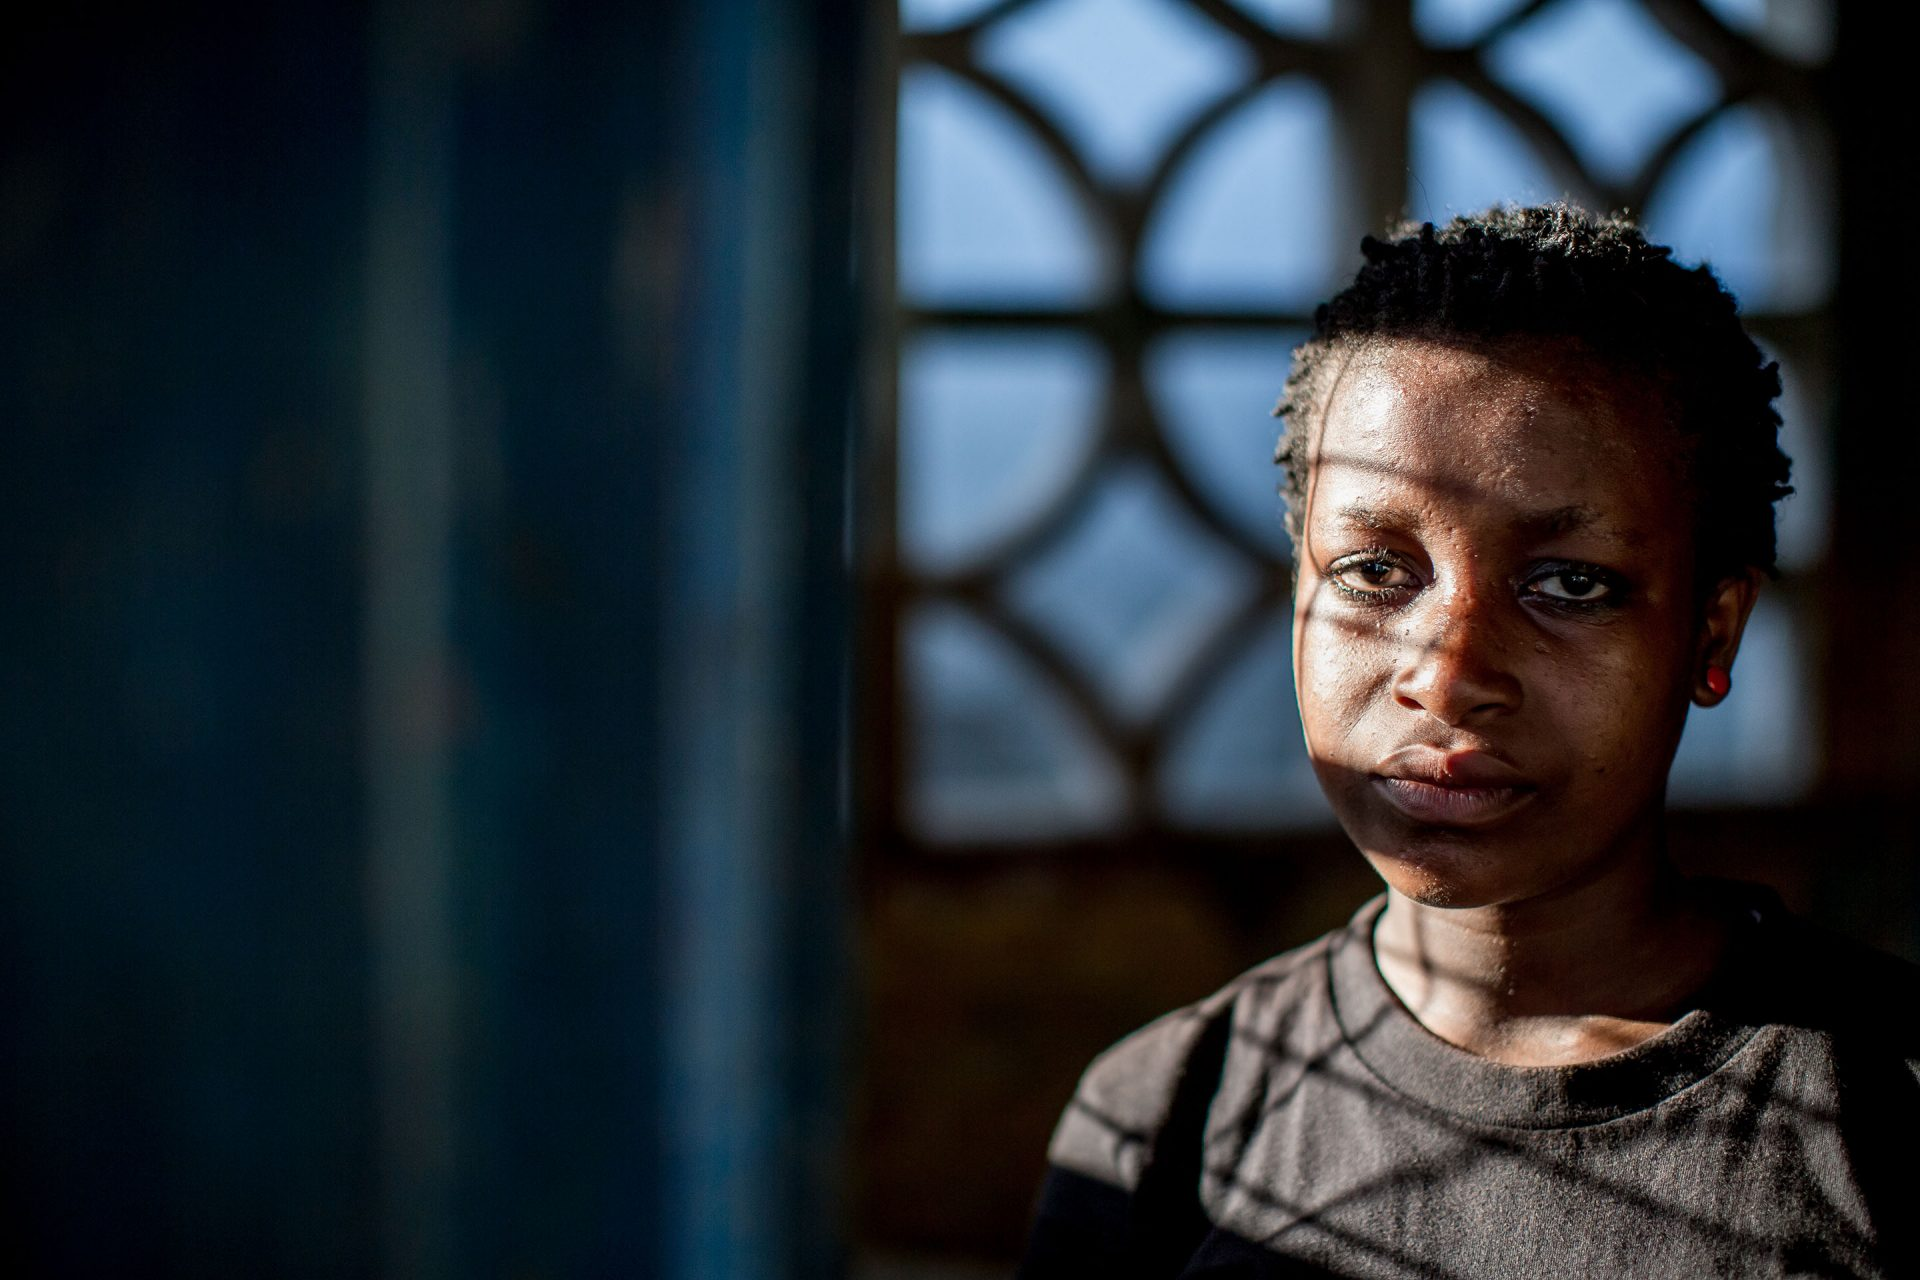 """""""My biggest fear is the thought of disclosing my status to my future husband. I am frightened that he may not accept me,"""" says Halima, 16, from Tanzania. When Halima was in third grade, the other children would tease her because of a skin rash she"""